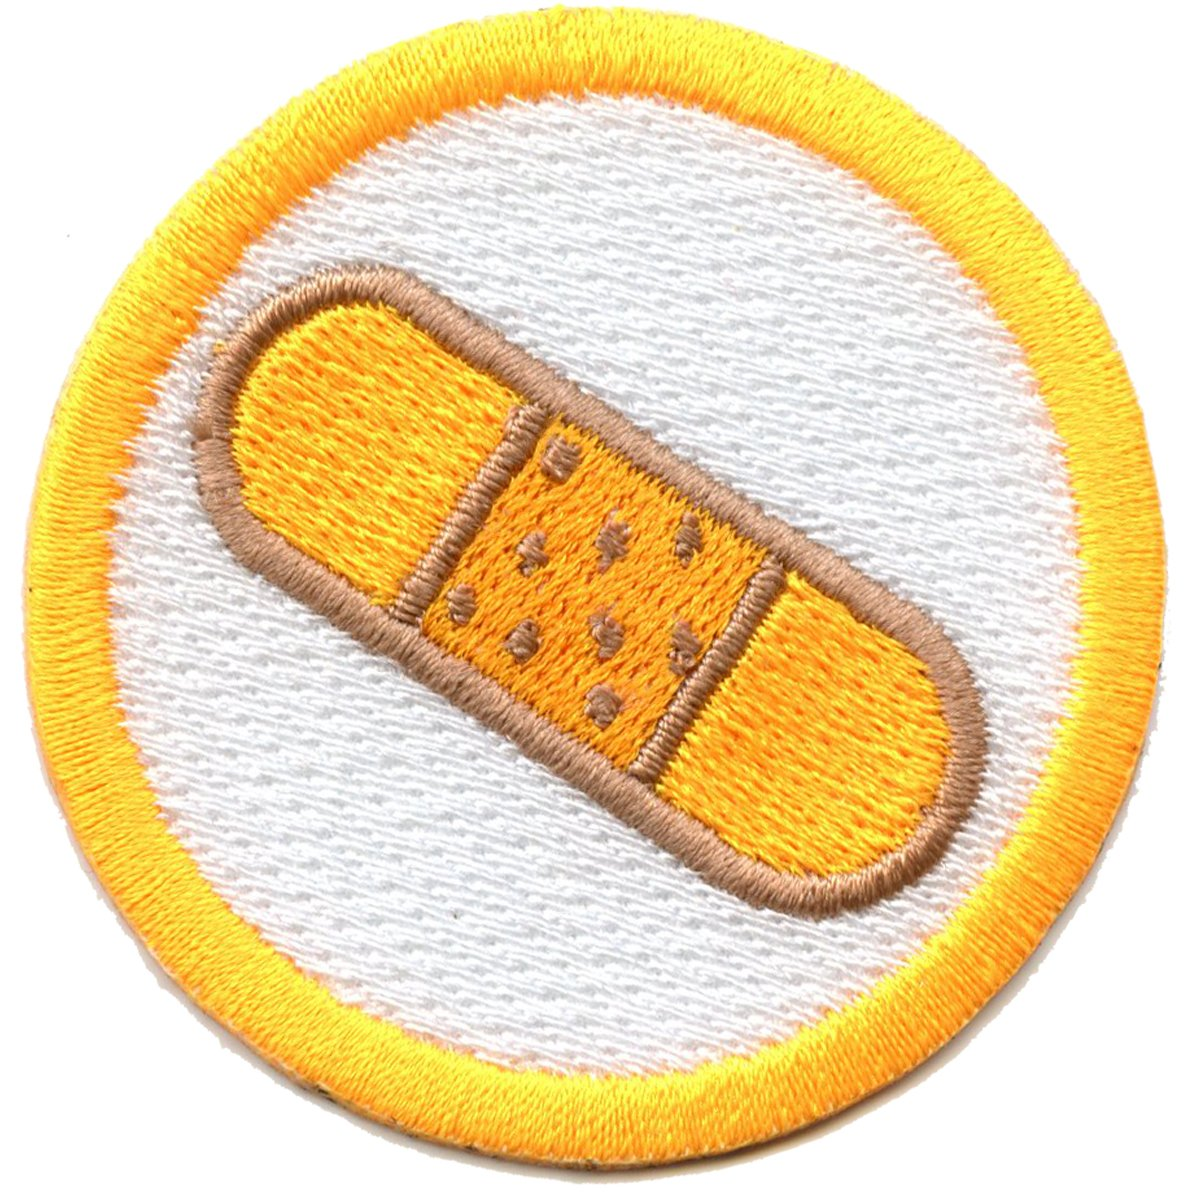 First Aid Scout Merit Badge Embroidered Iron On Patch